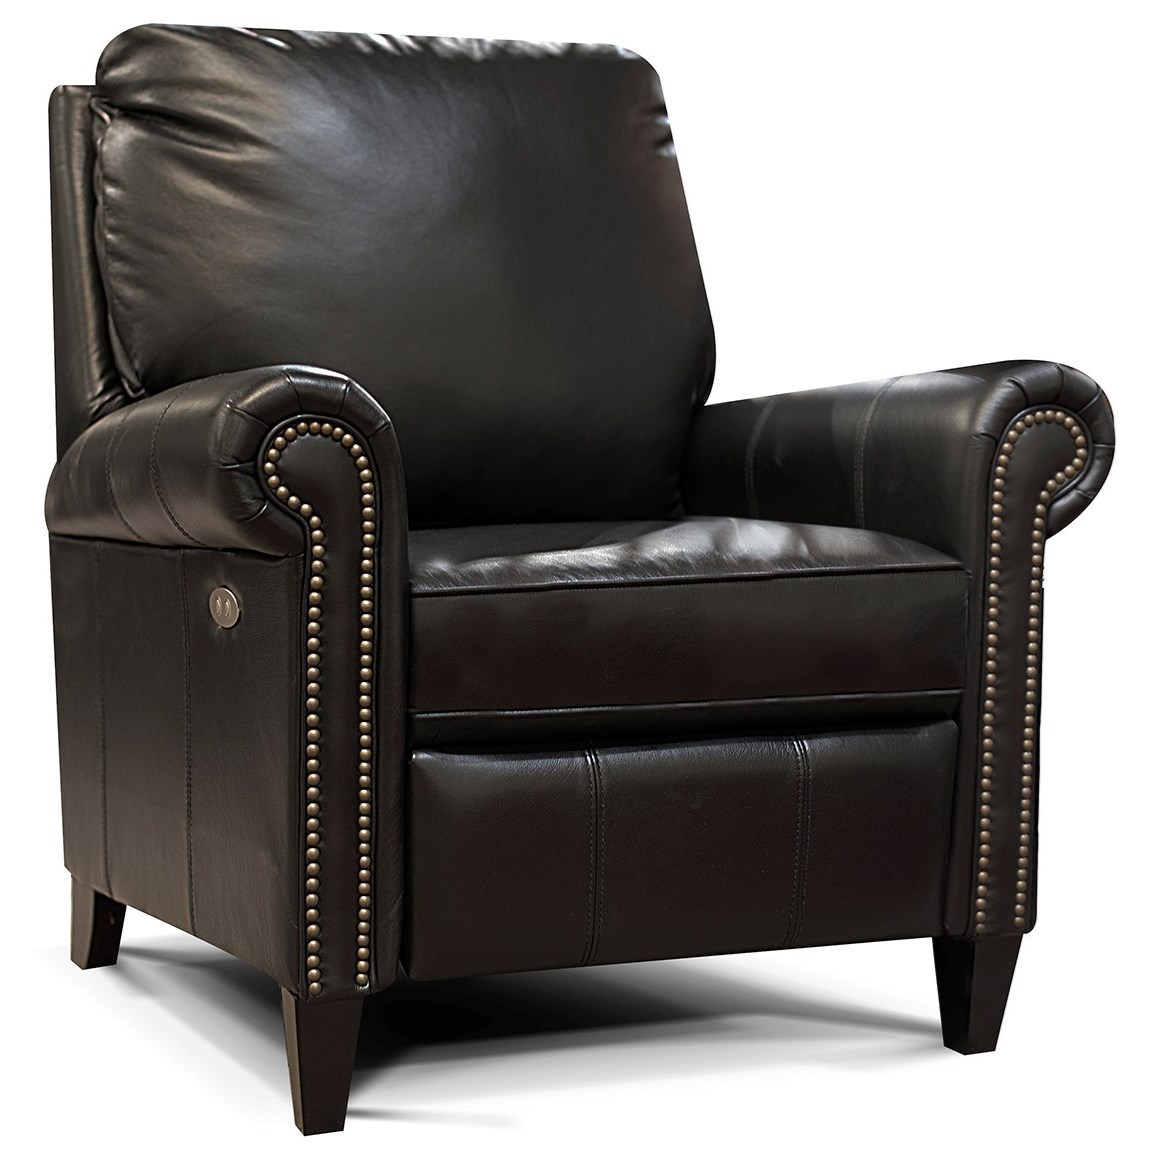 Rhys Leather High Leg Reclining Chair With Nailheads By England